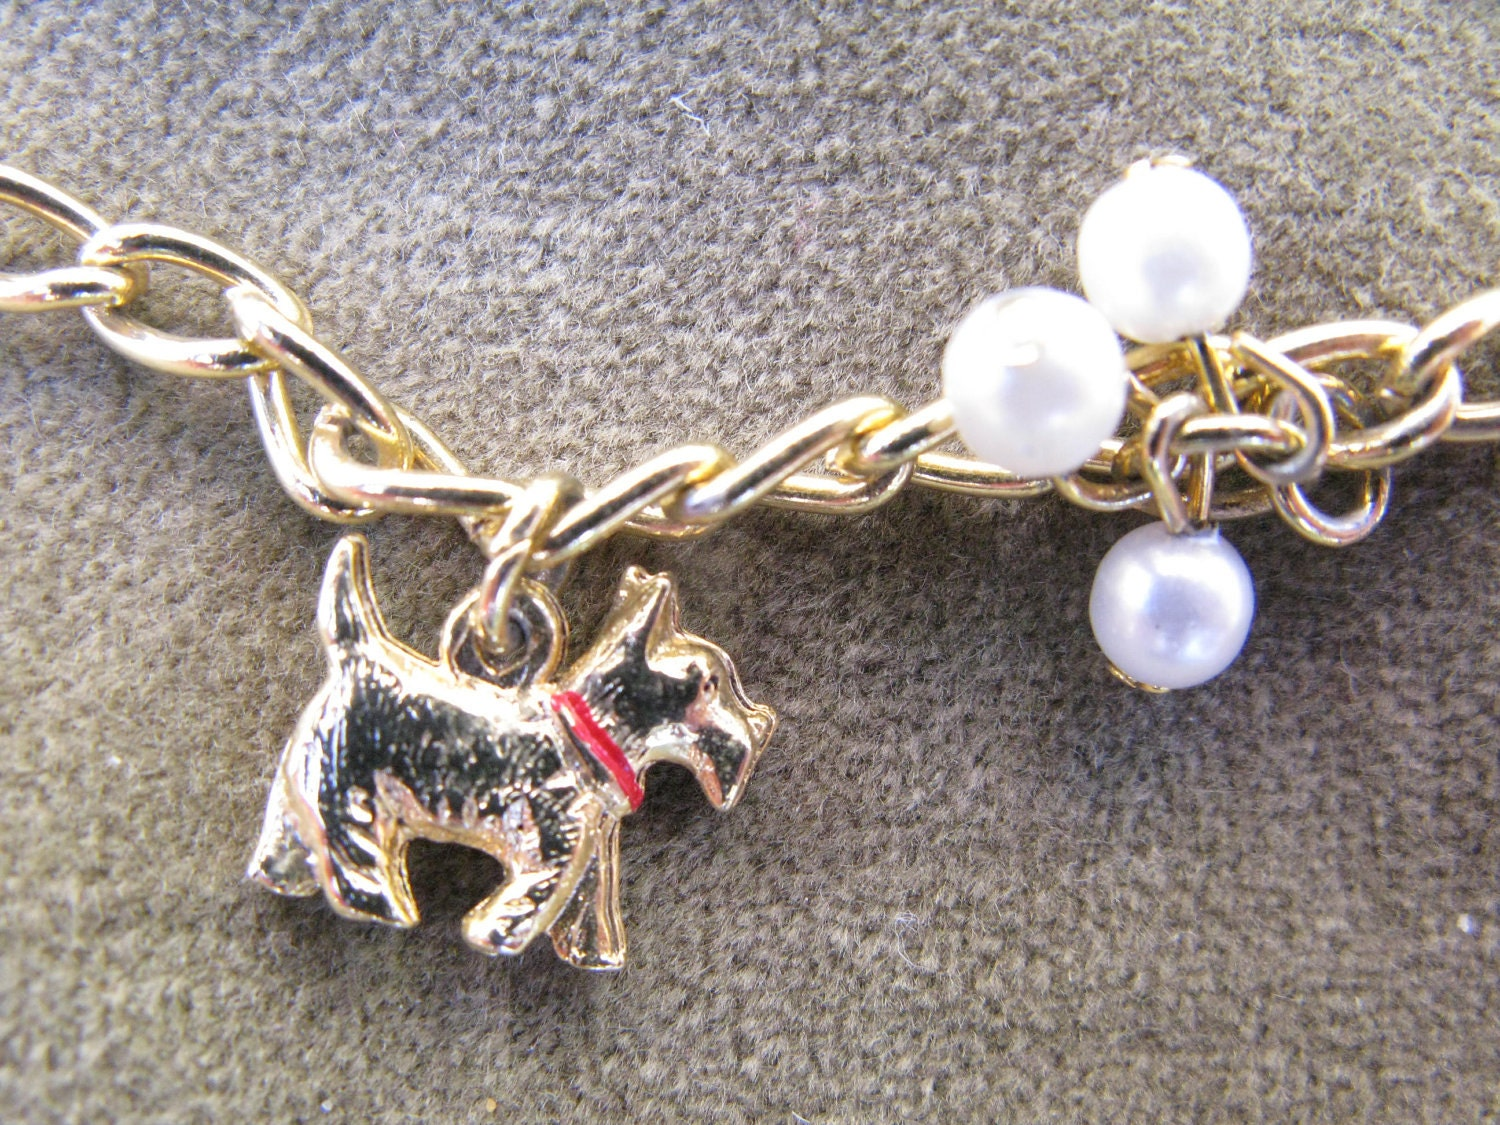 Vintage Scottie Dog Charm Bracelet